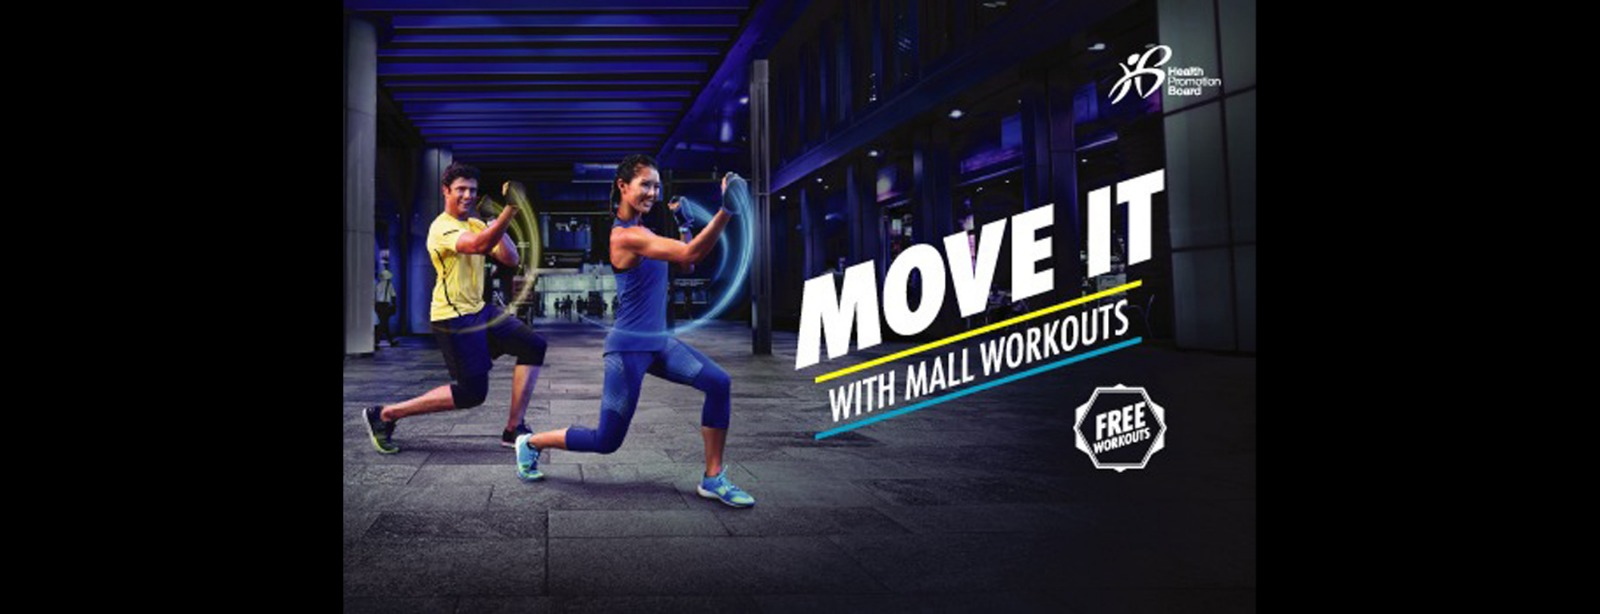 Move It With Mall WorkOuts